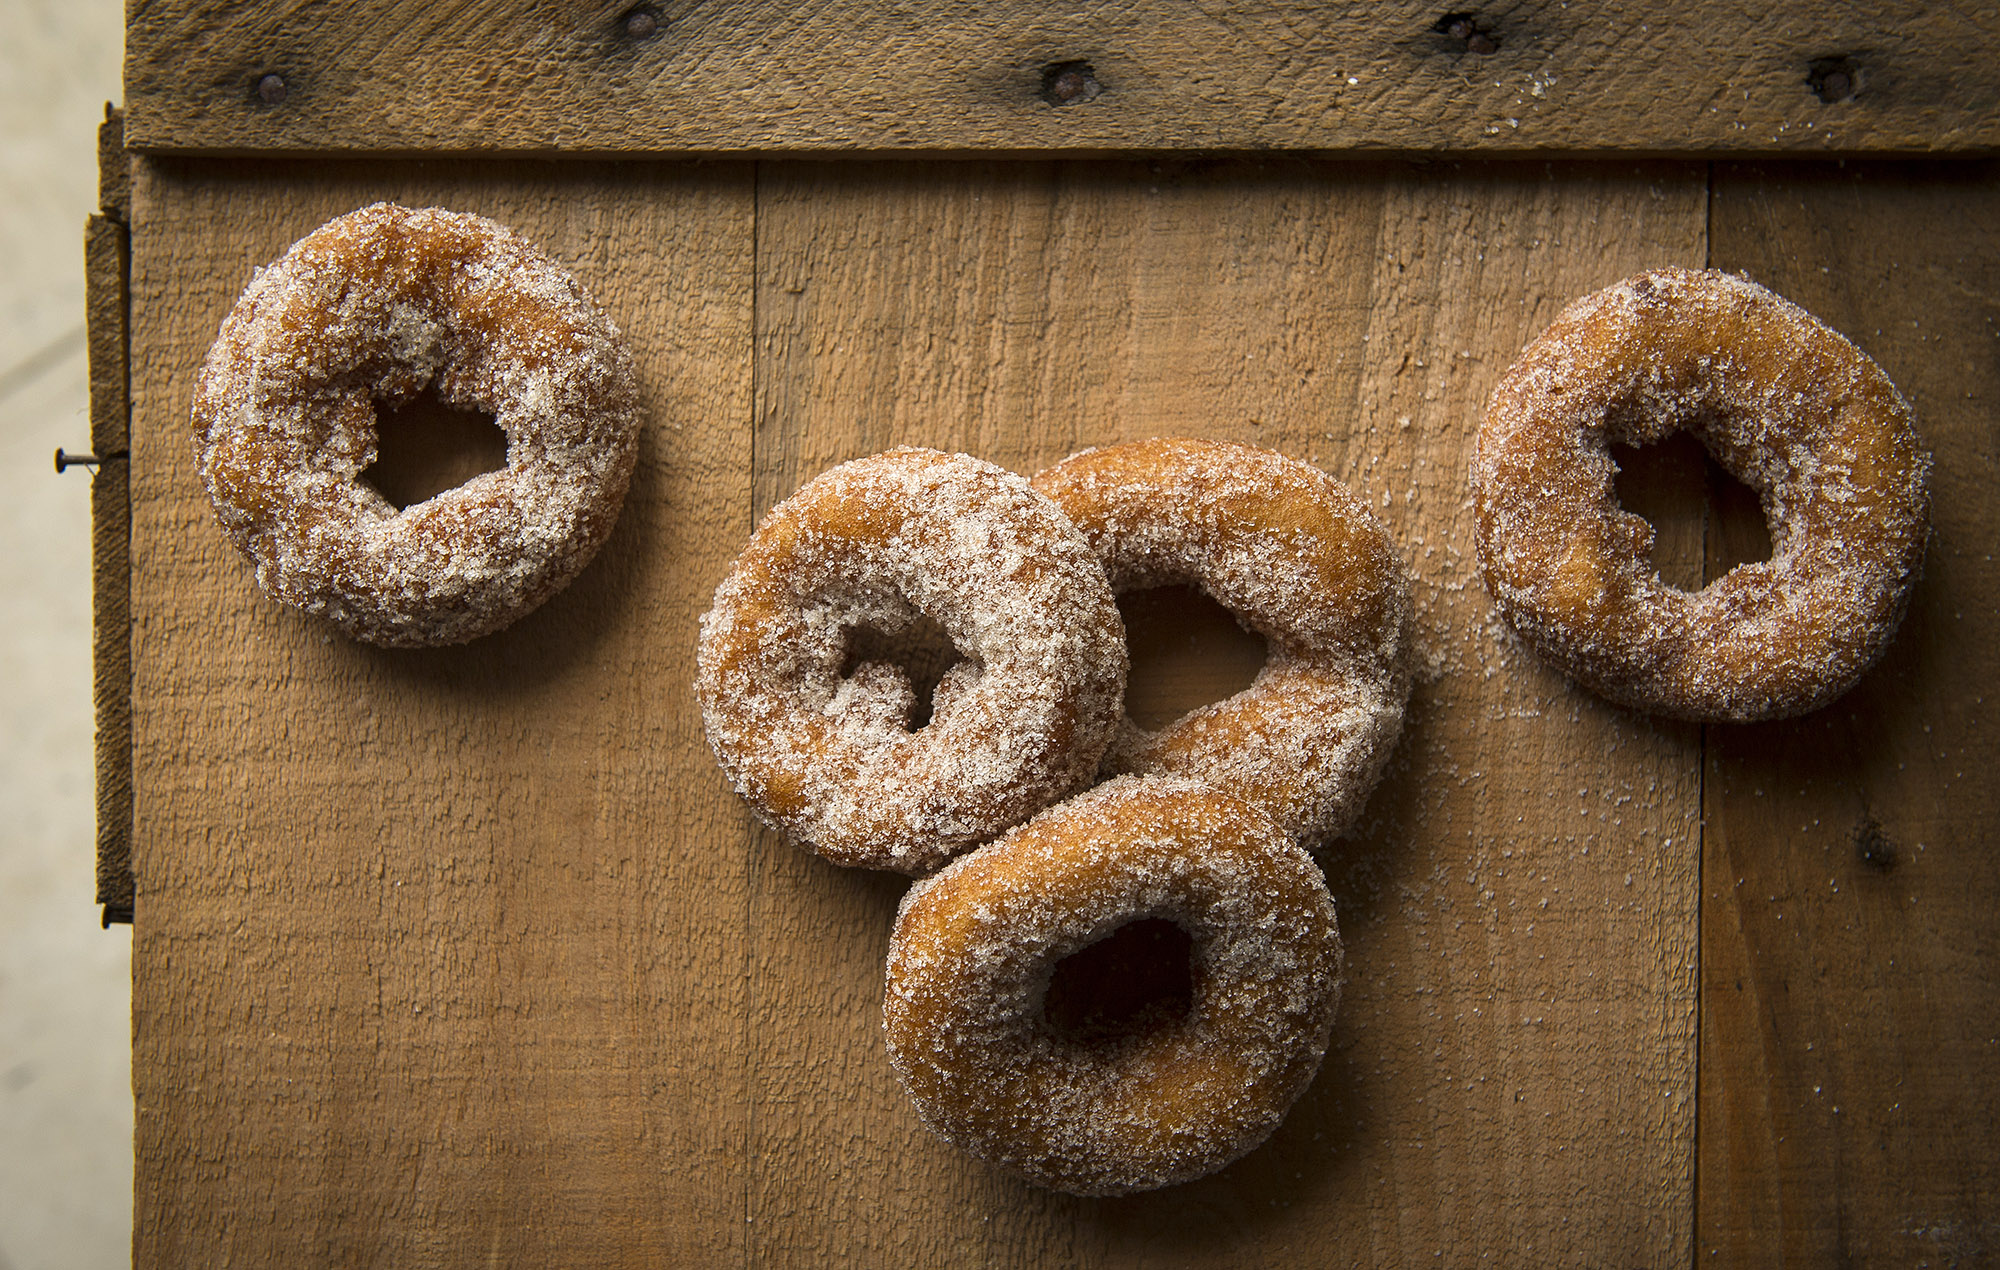 For a feature on NJ Cider Donuts.  Photographed for The New York Times